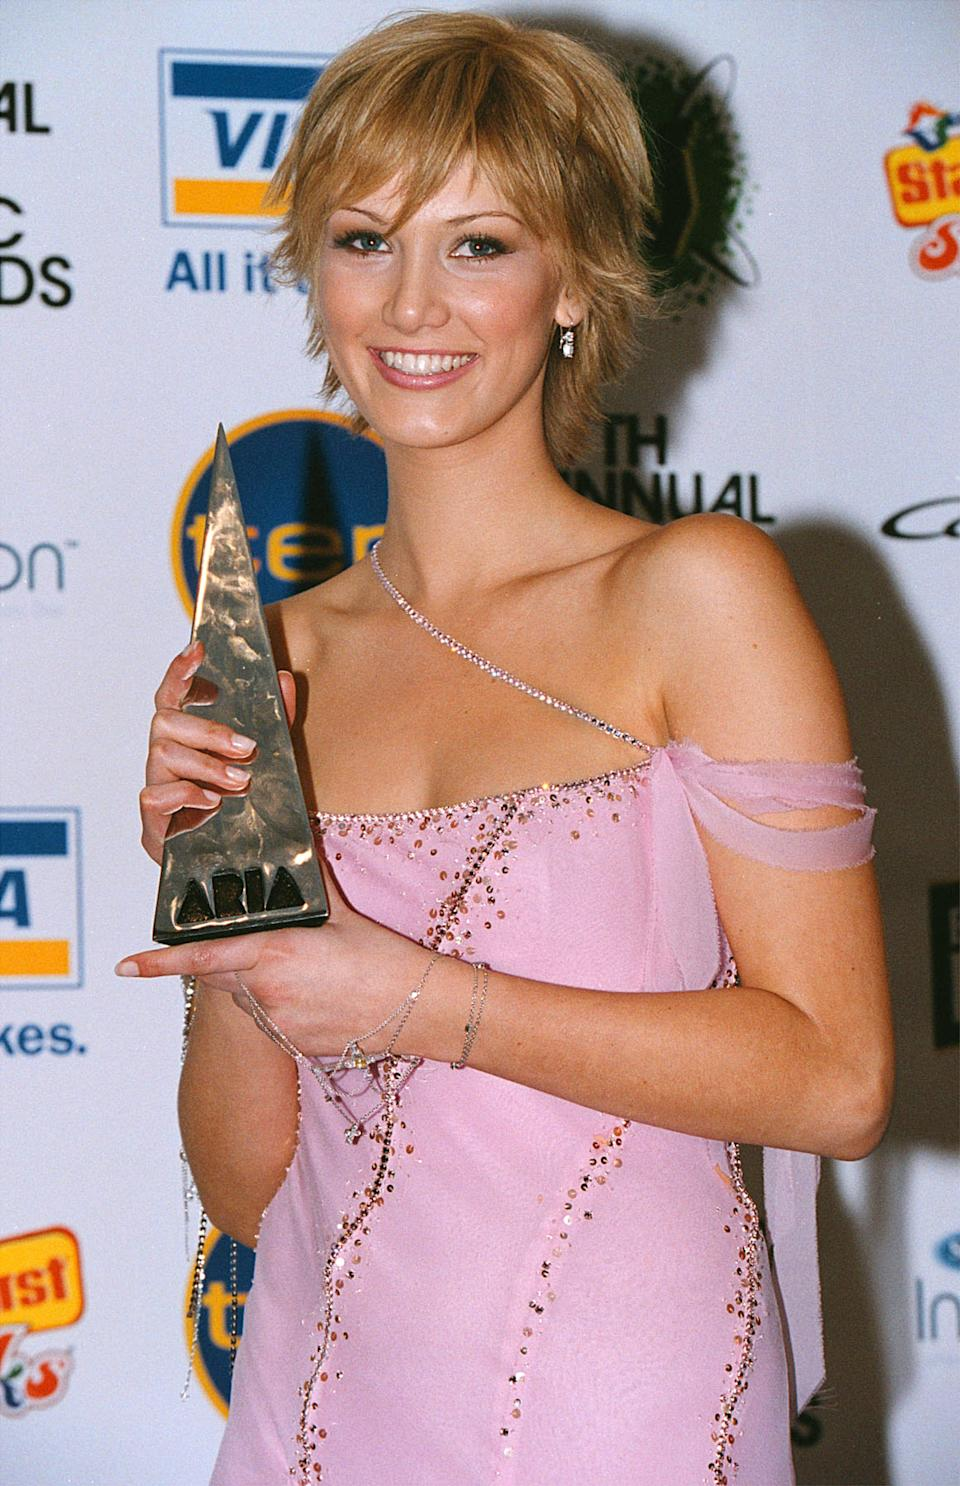 Delta Goodrem poses in a pink dress and a short hairdo with her ARIA Award on the red carpet in October 2003, months after her cancer diagnosis